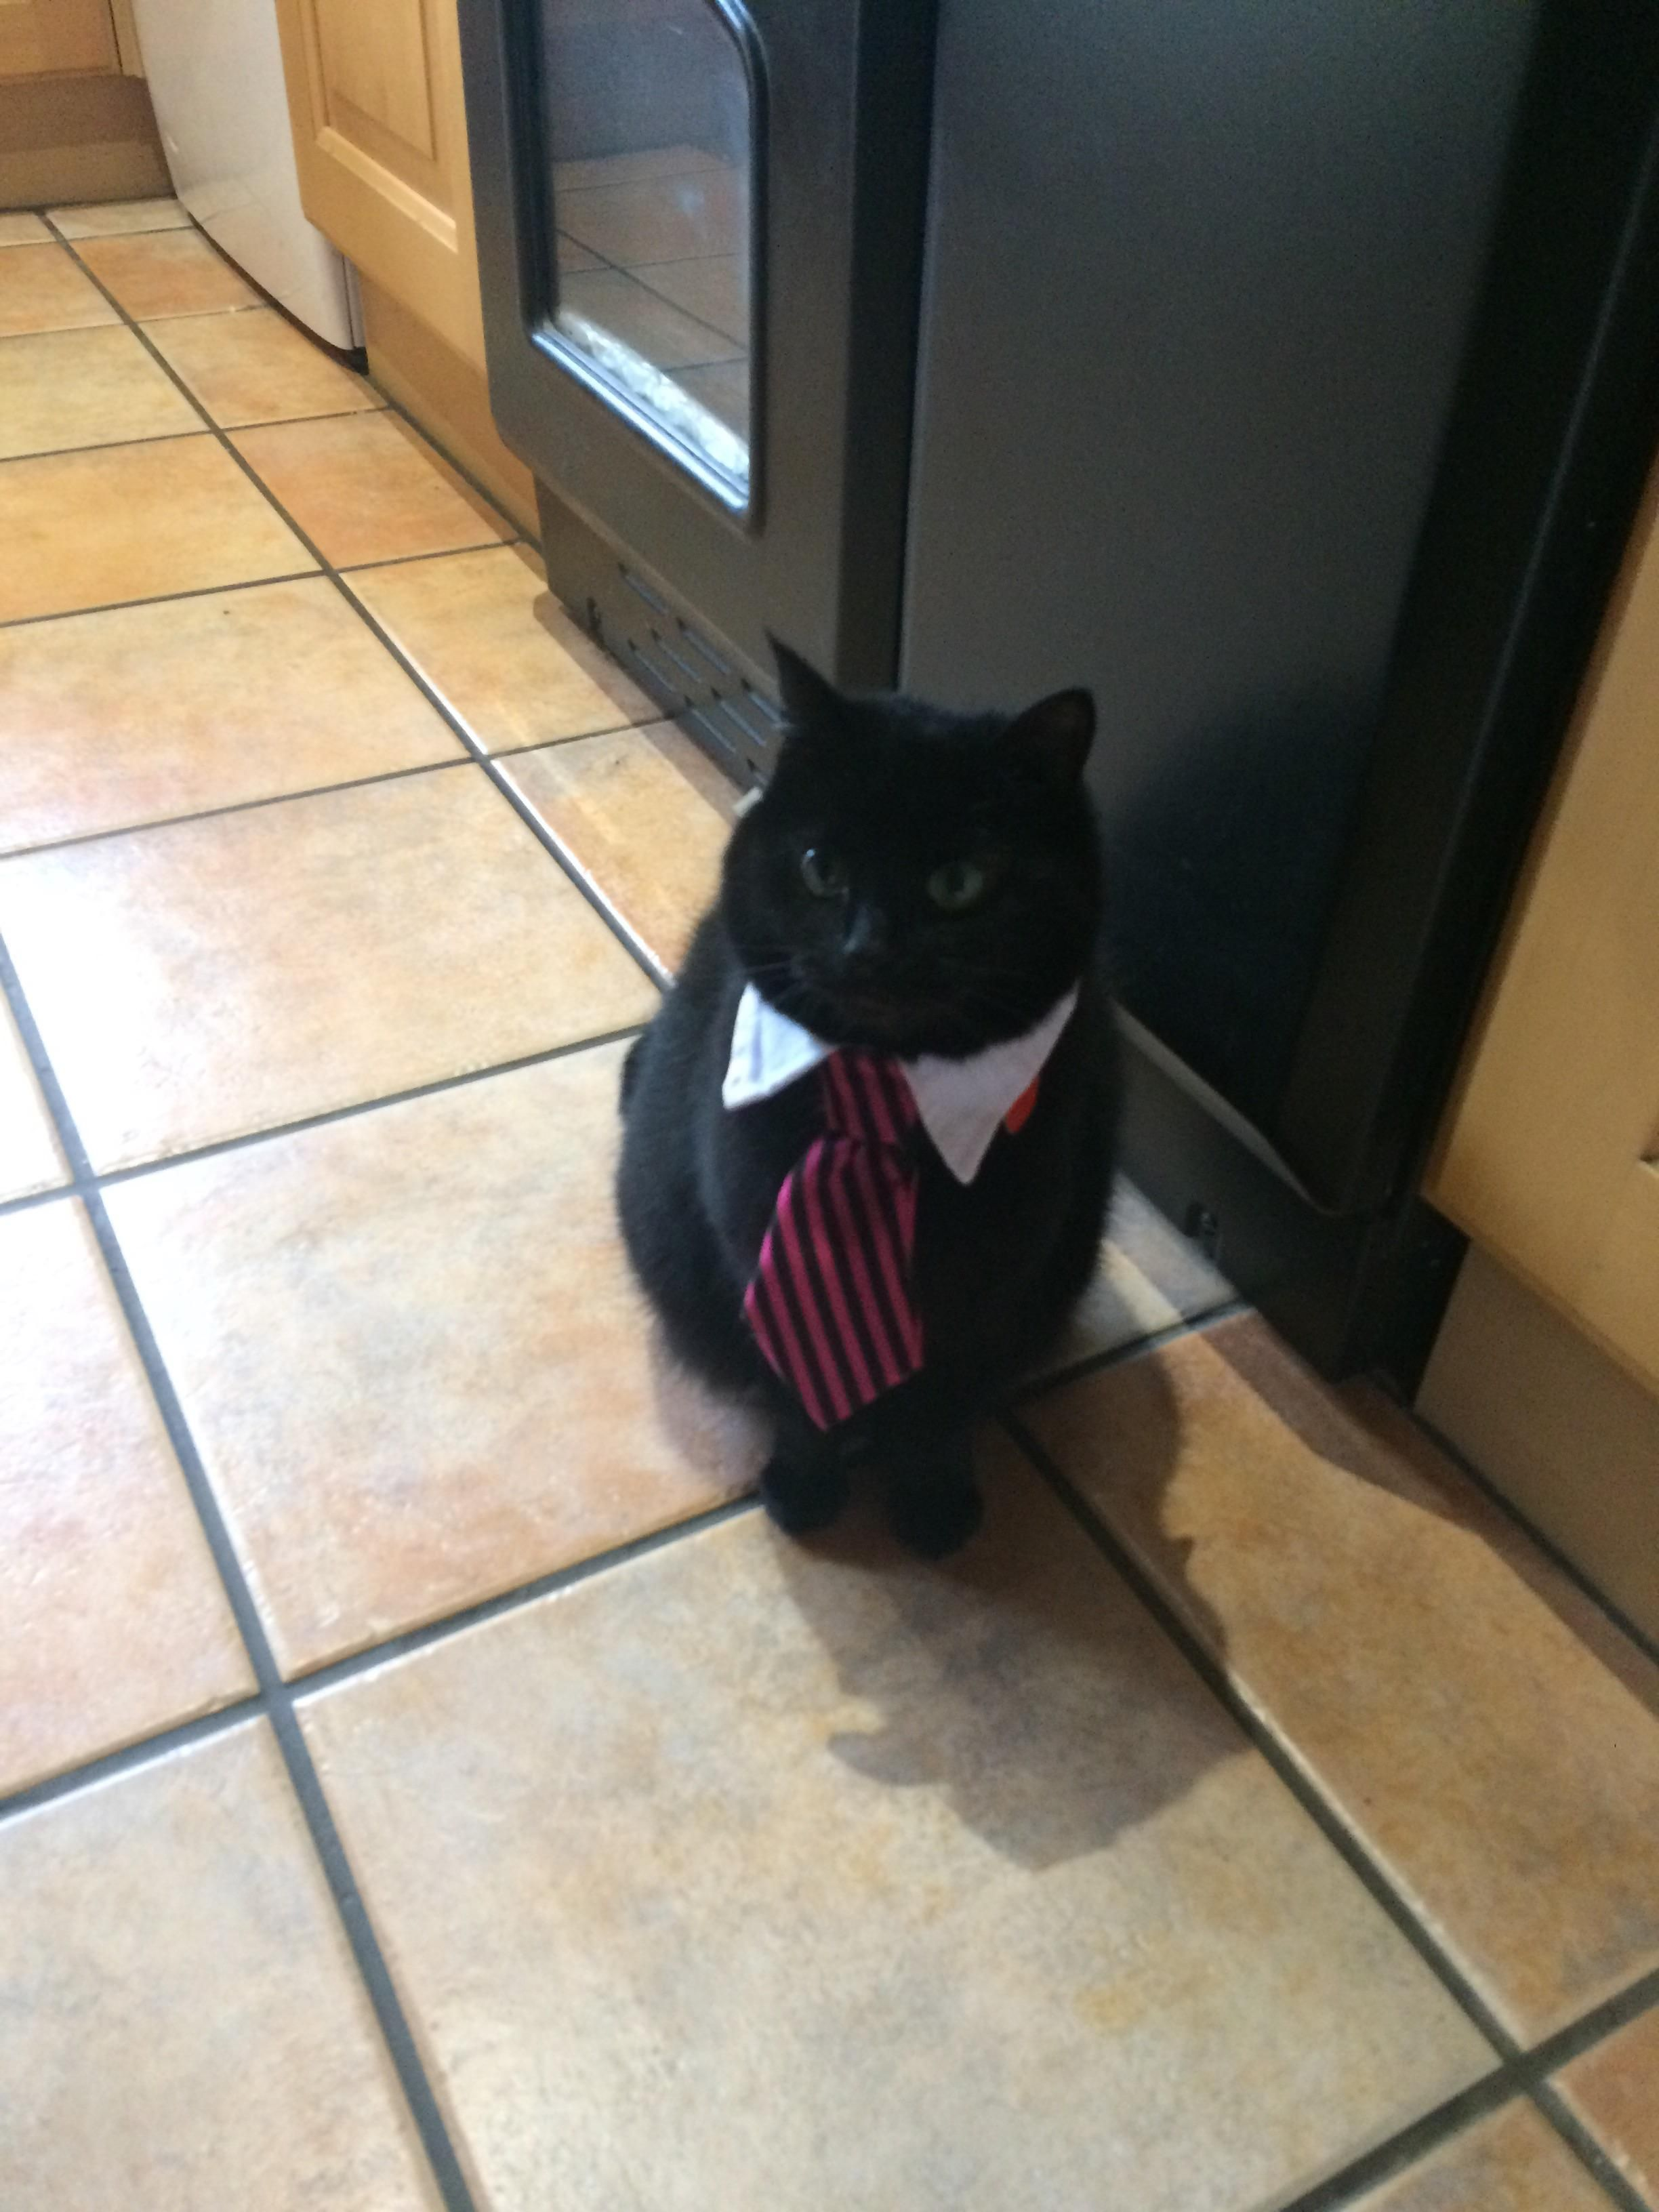 First job interview of the year...